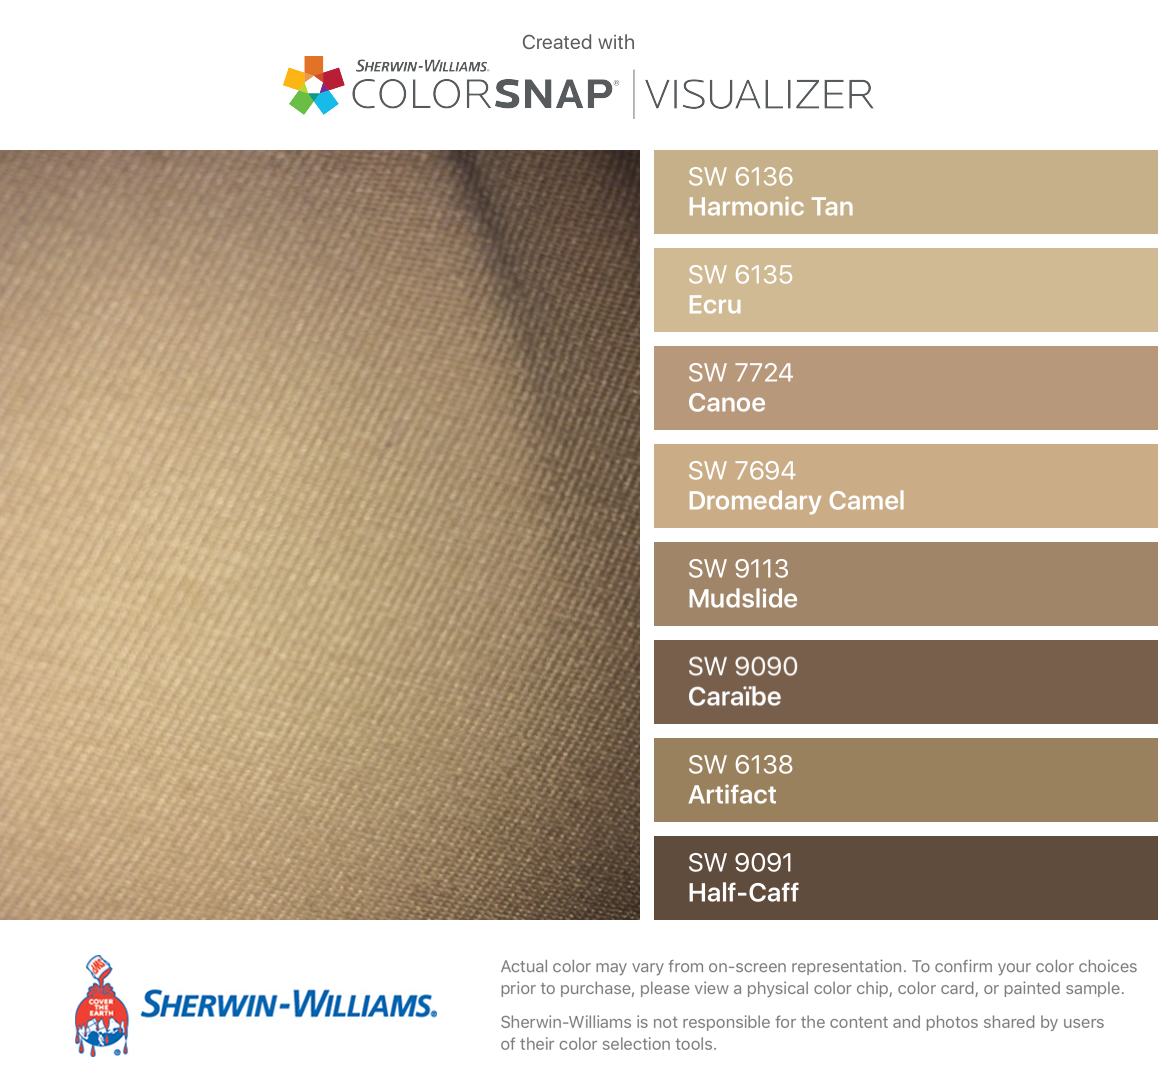 kitchen cabinets in lowes i found these colors with colorsnap 174 visualizer for iphone 6136